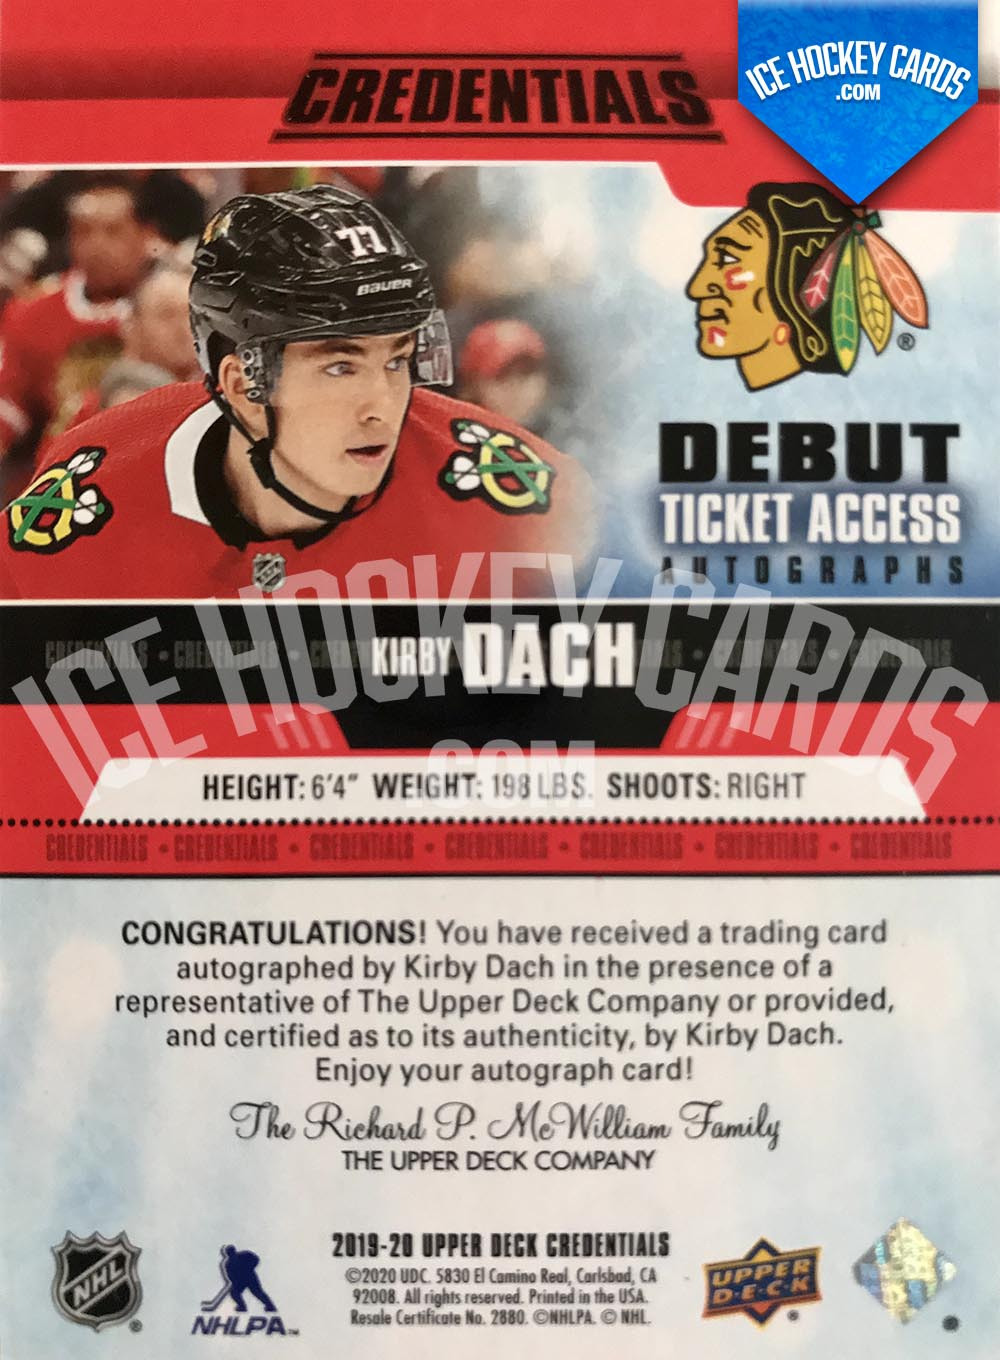 Upper Deck - Credentials 2019-20 - Kirby Dach Debut Ticket Access Autographs Rookie Card back